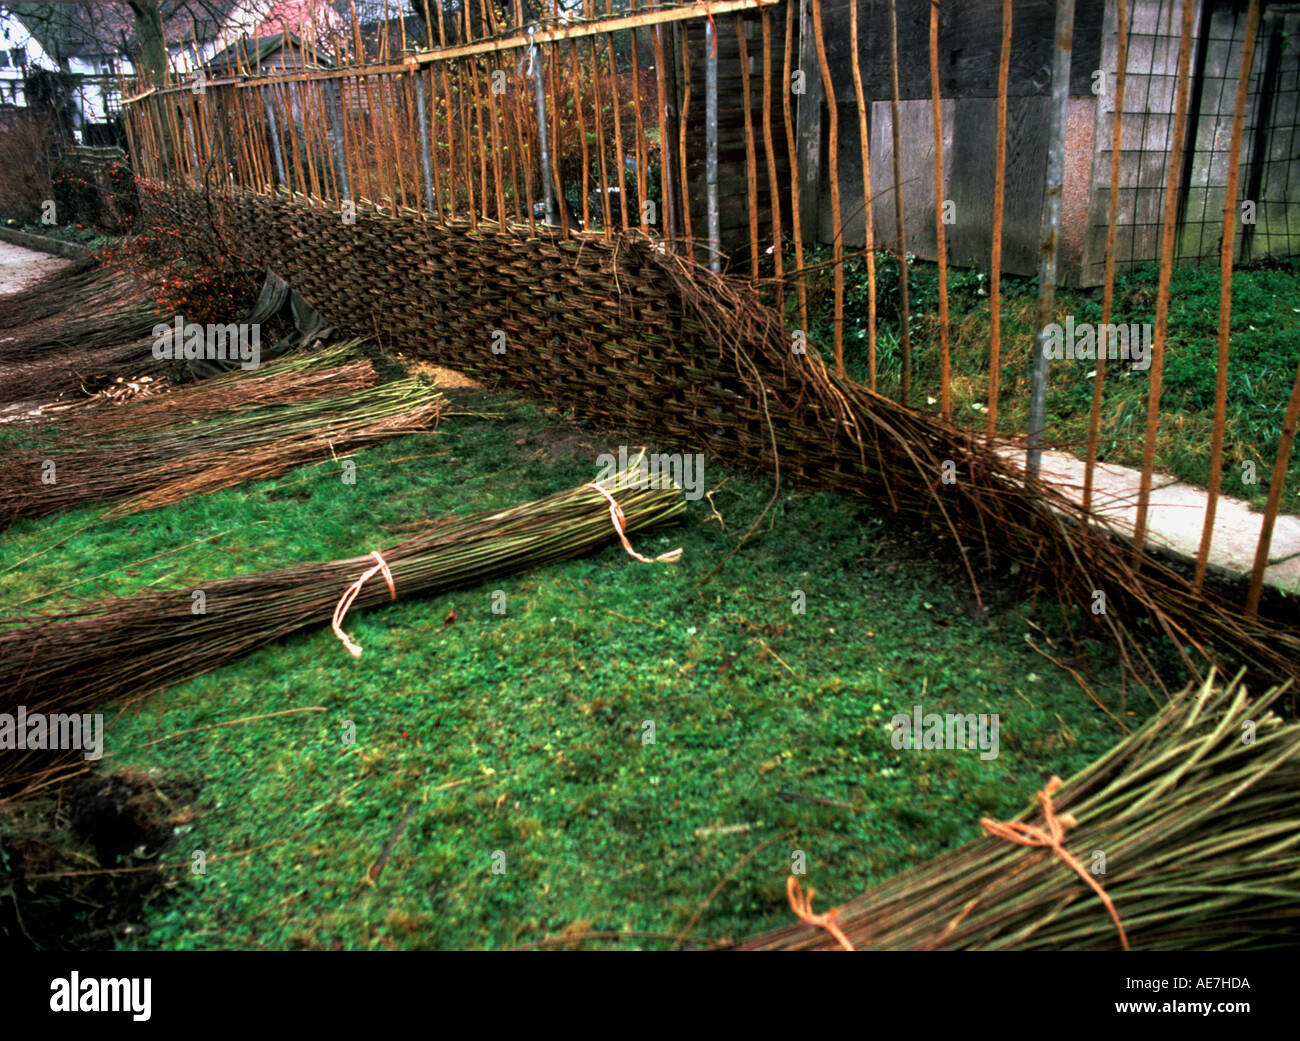 With A Continuous Stockfotos & With A Continuous Bilder - Alamy